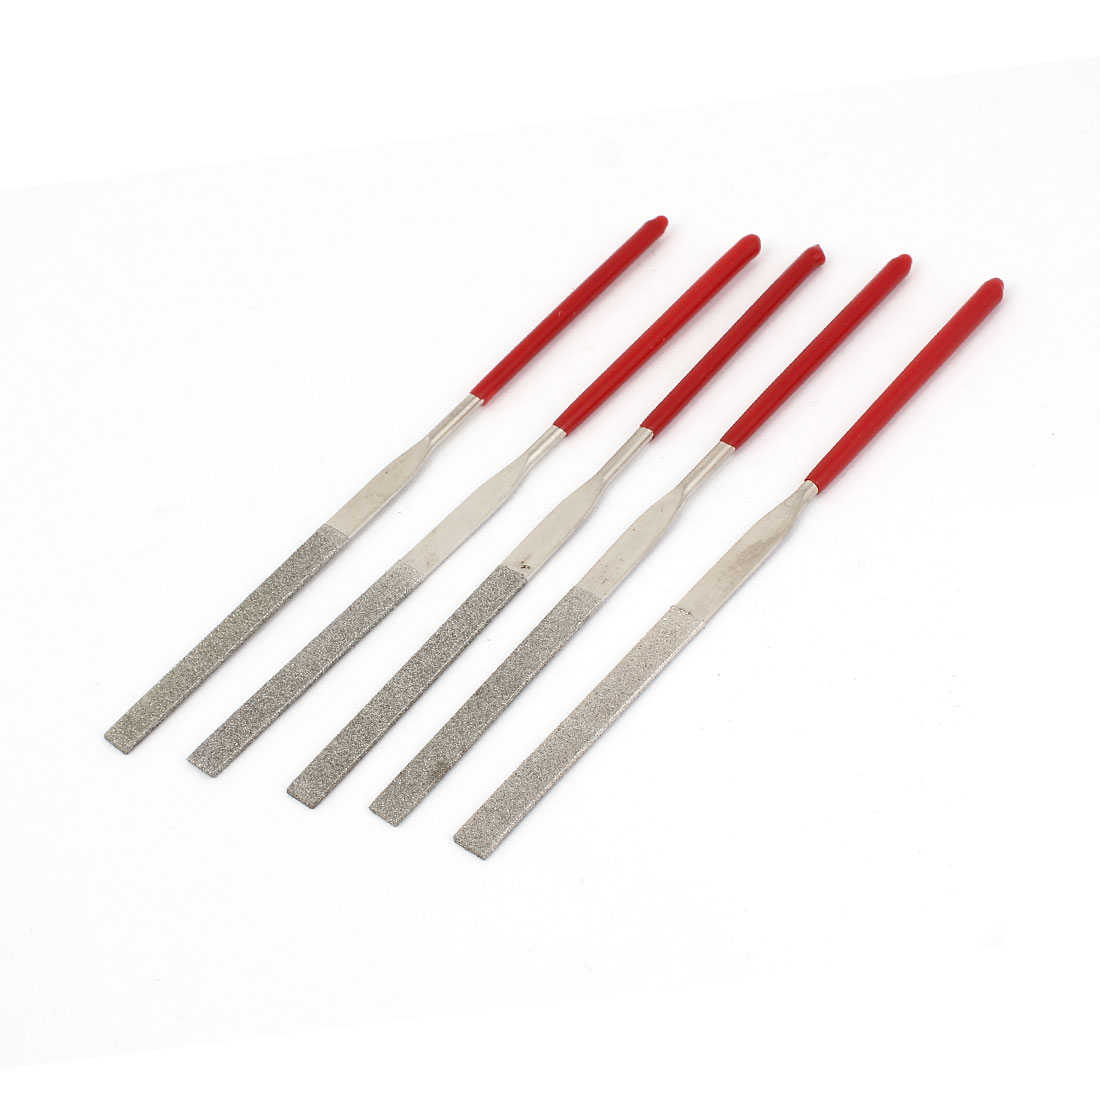 3mm x 140mm Rubber Handle Diamond Coated Flat Files Tool 5 Pcs